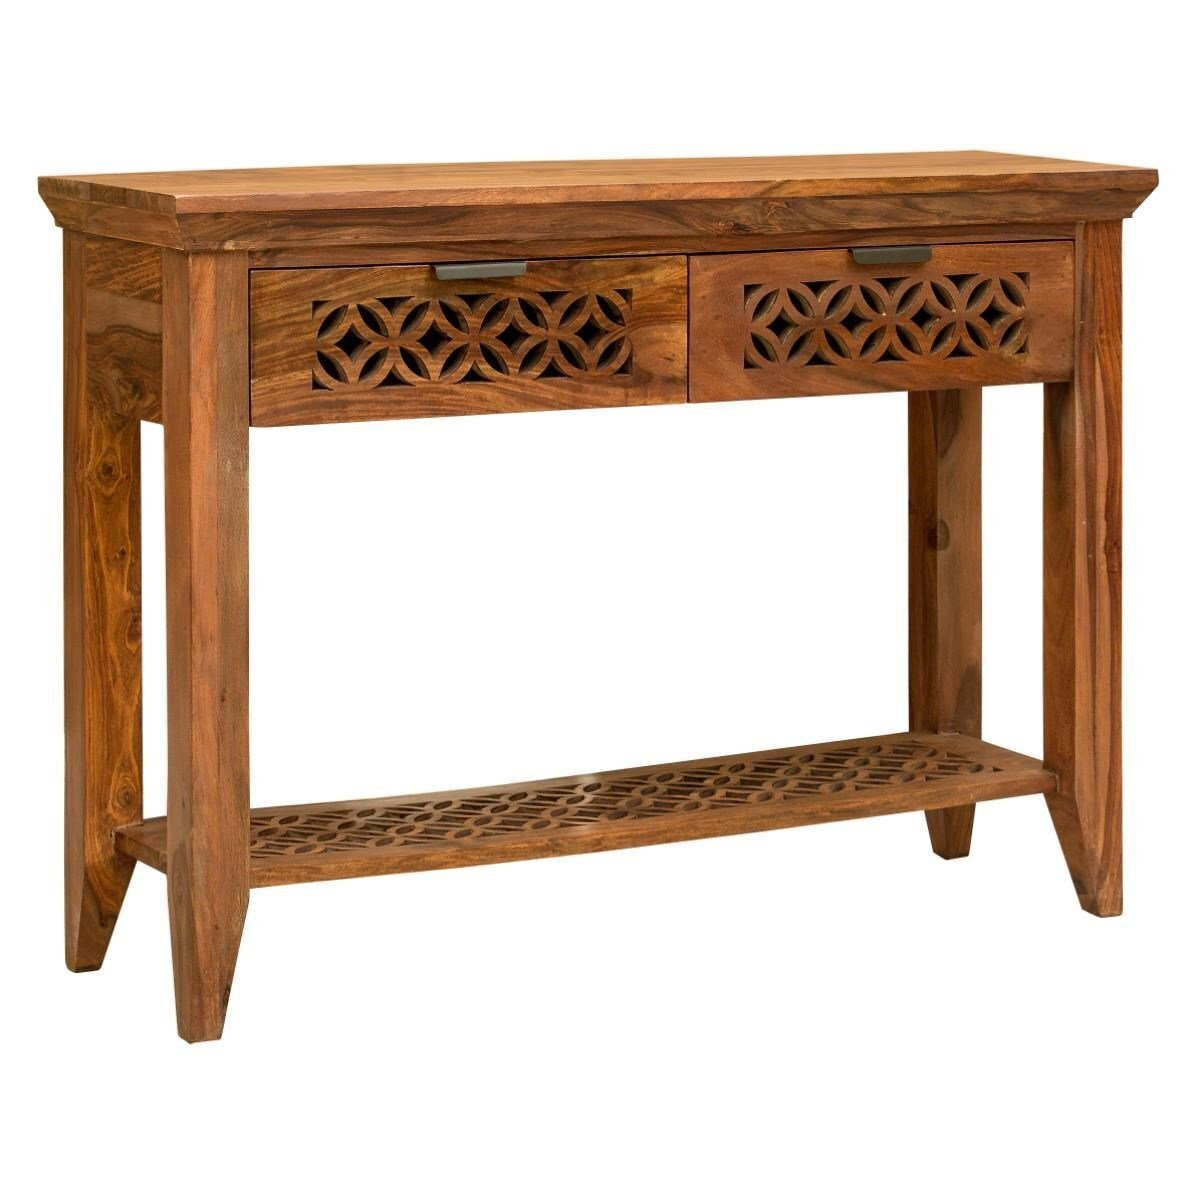 Wooden Console Table With Jaal Work